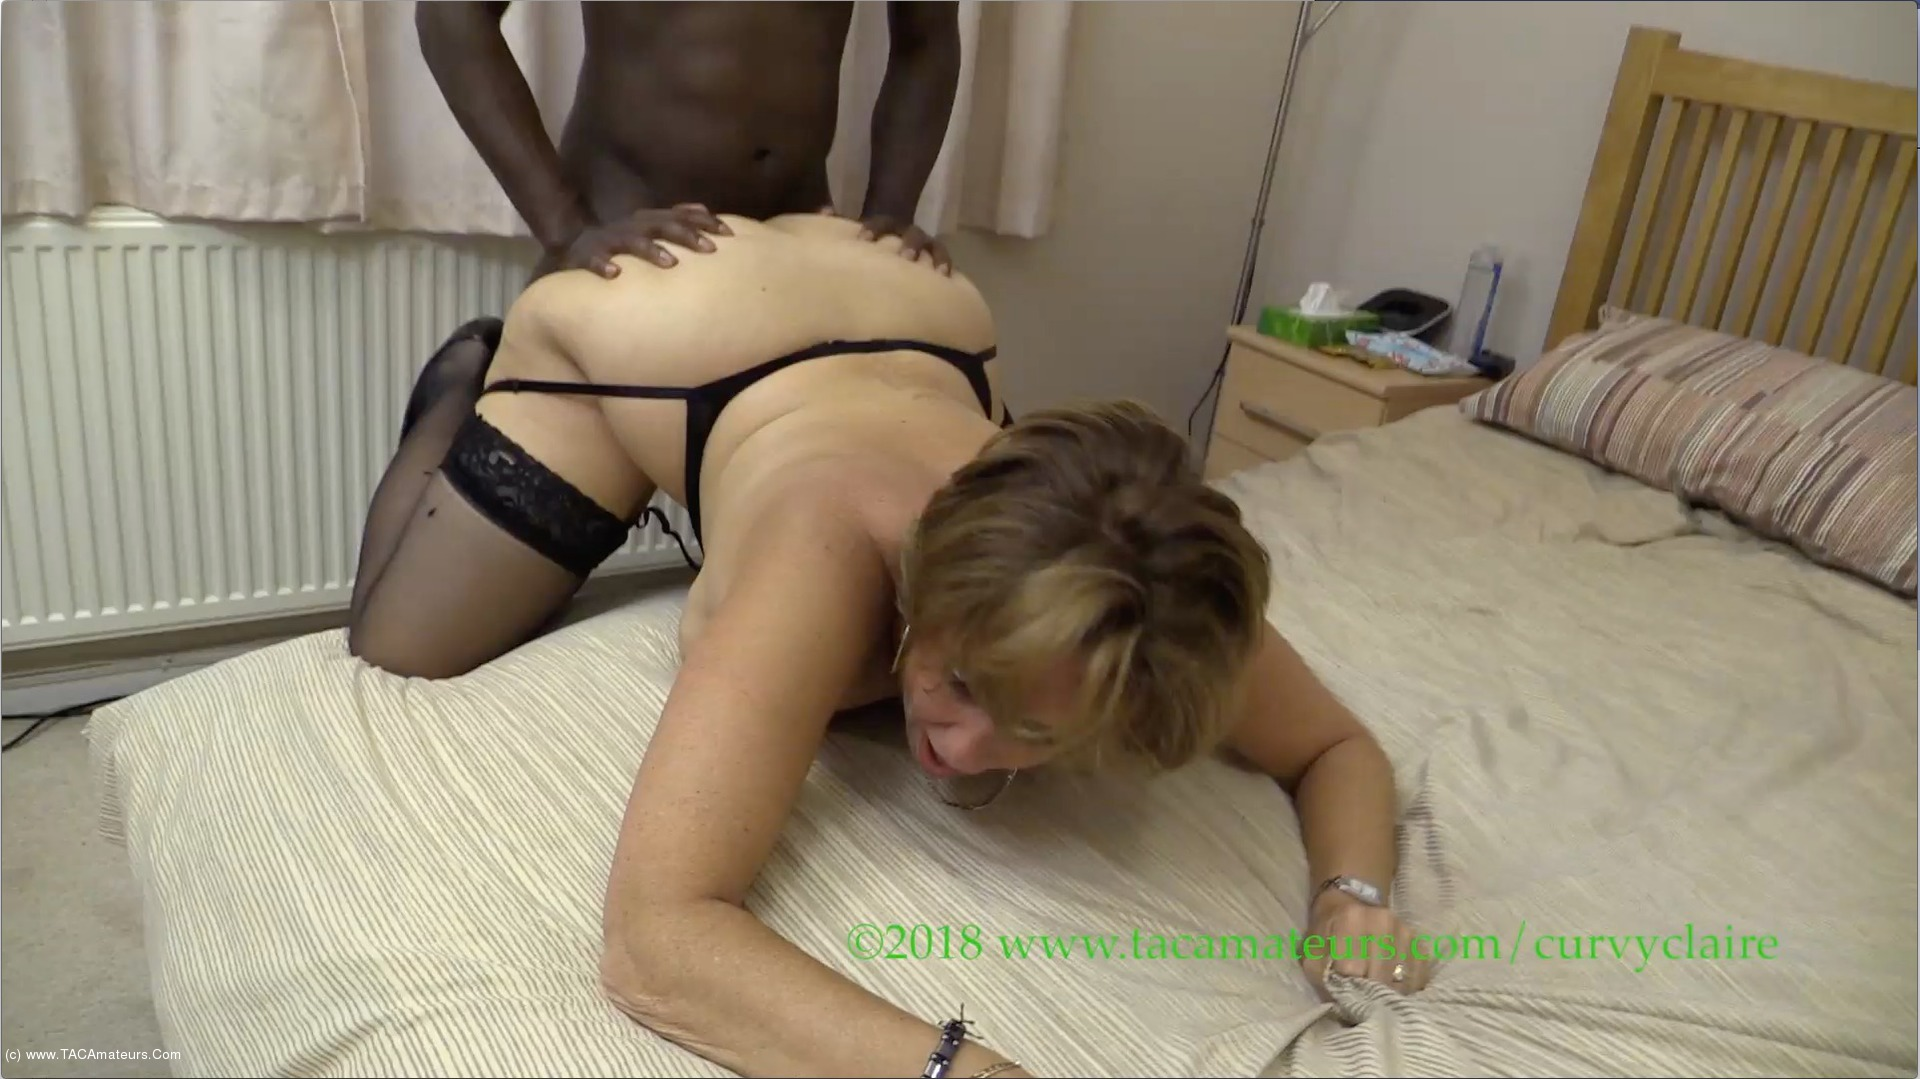 CurvyClaire - Dial A Dicks Huge 10 Inch Cock Pt6 scene 3